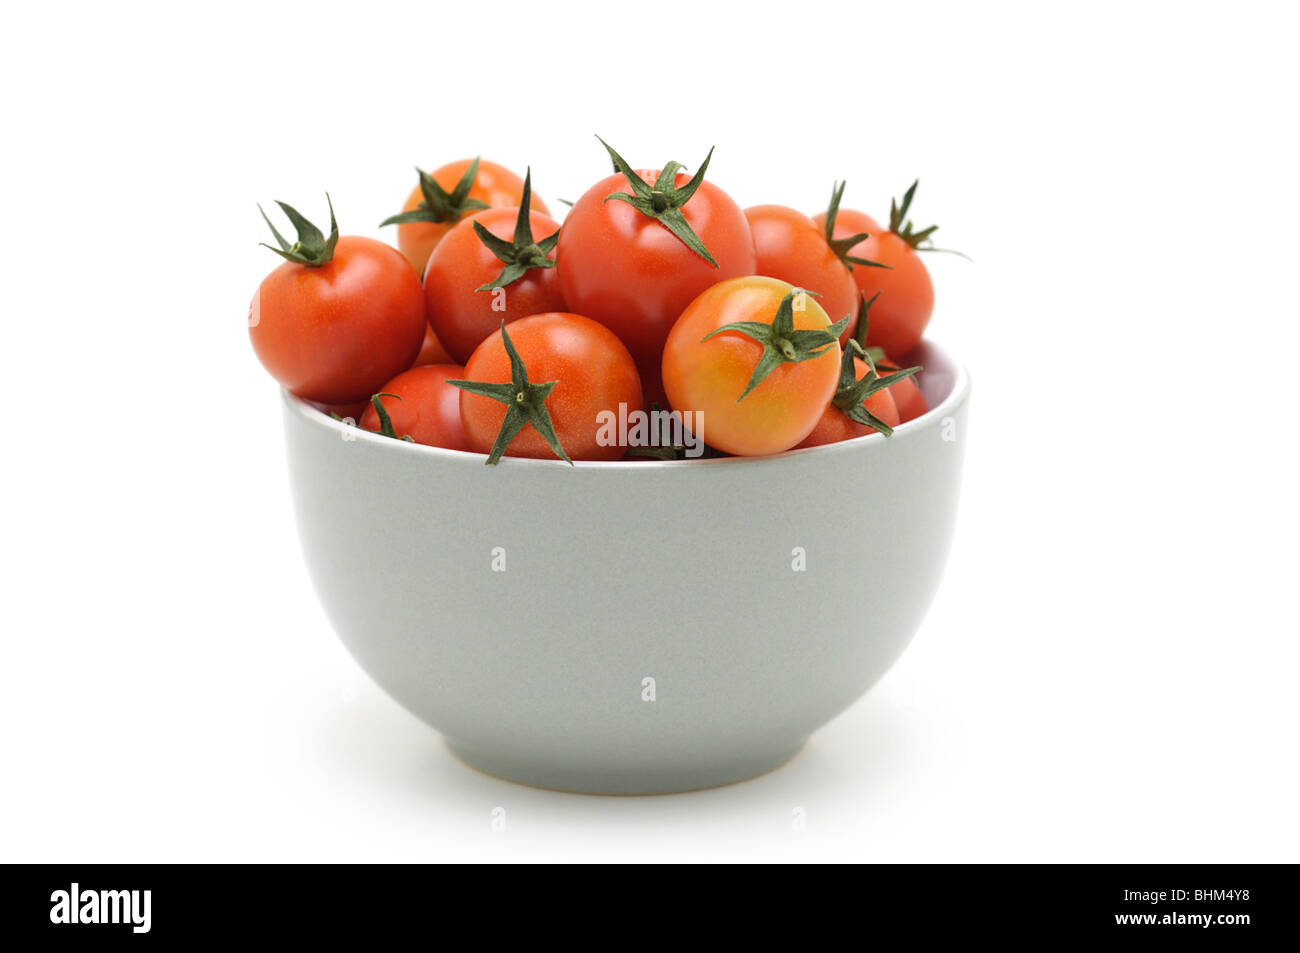 Cherry Tomatoes in Bowl - Stock Image